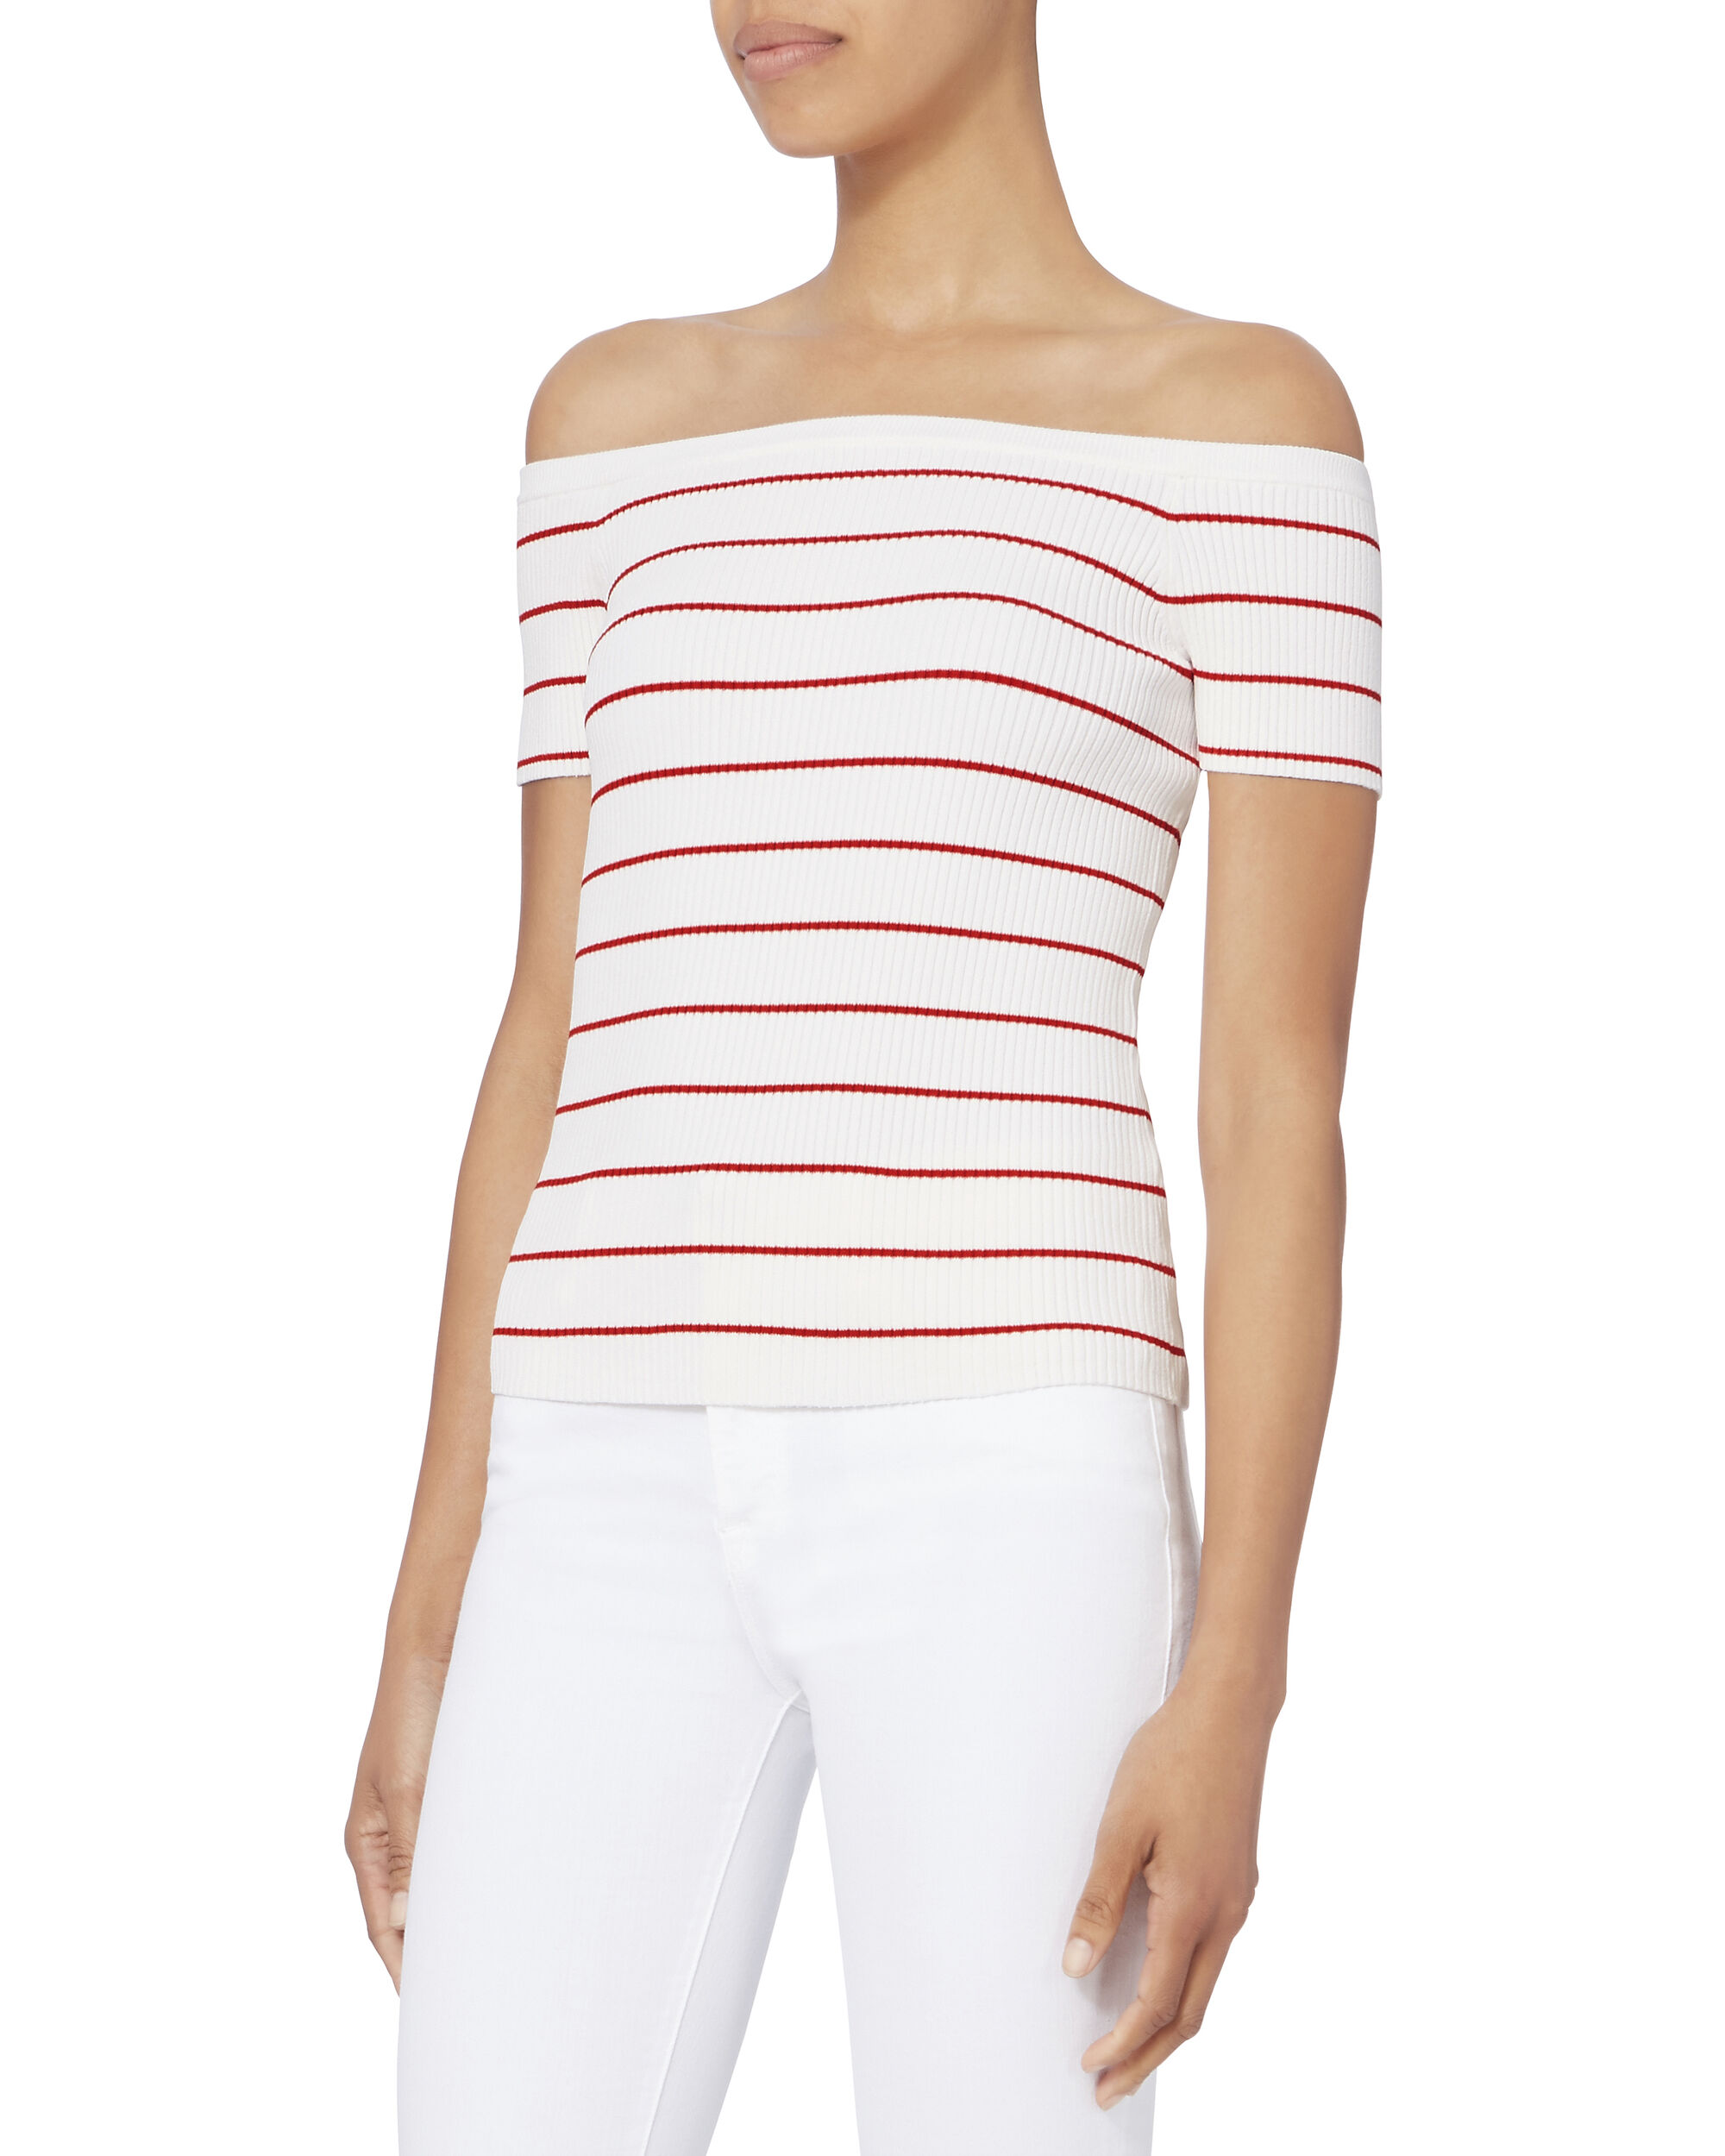 Ariana Off Shoulder Striped Knit Top, PATTERN, hi-res